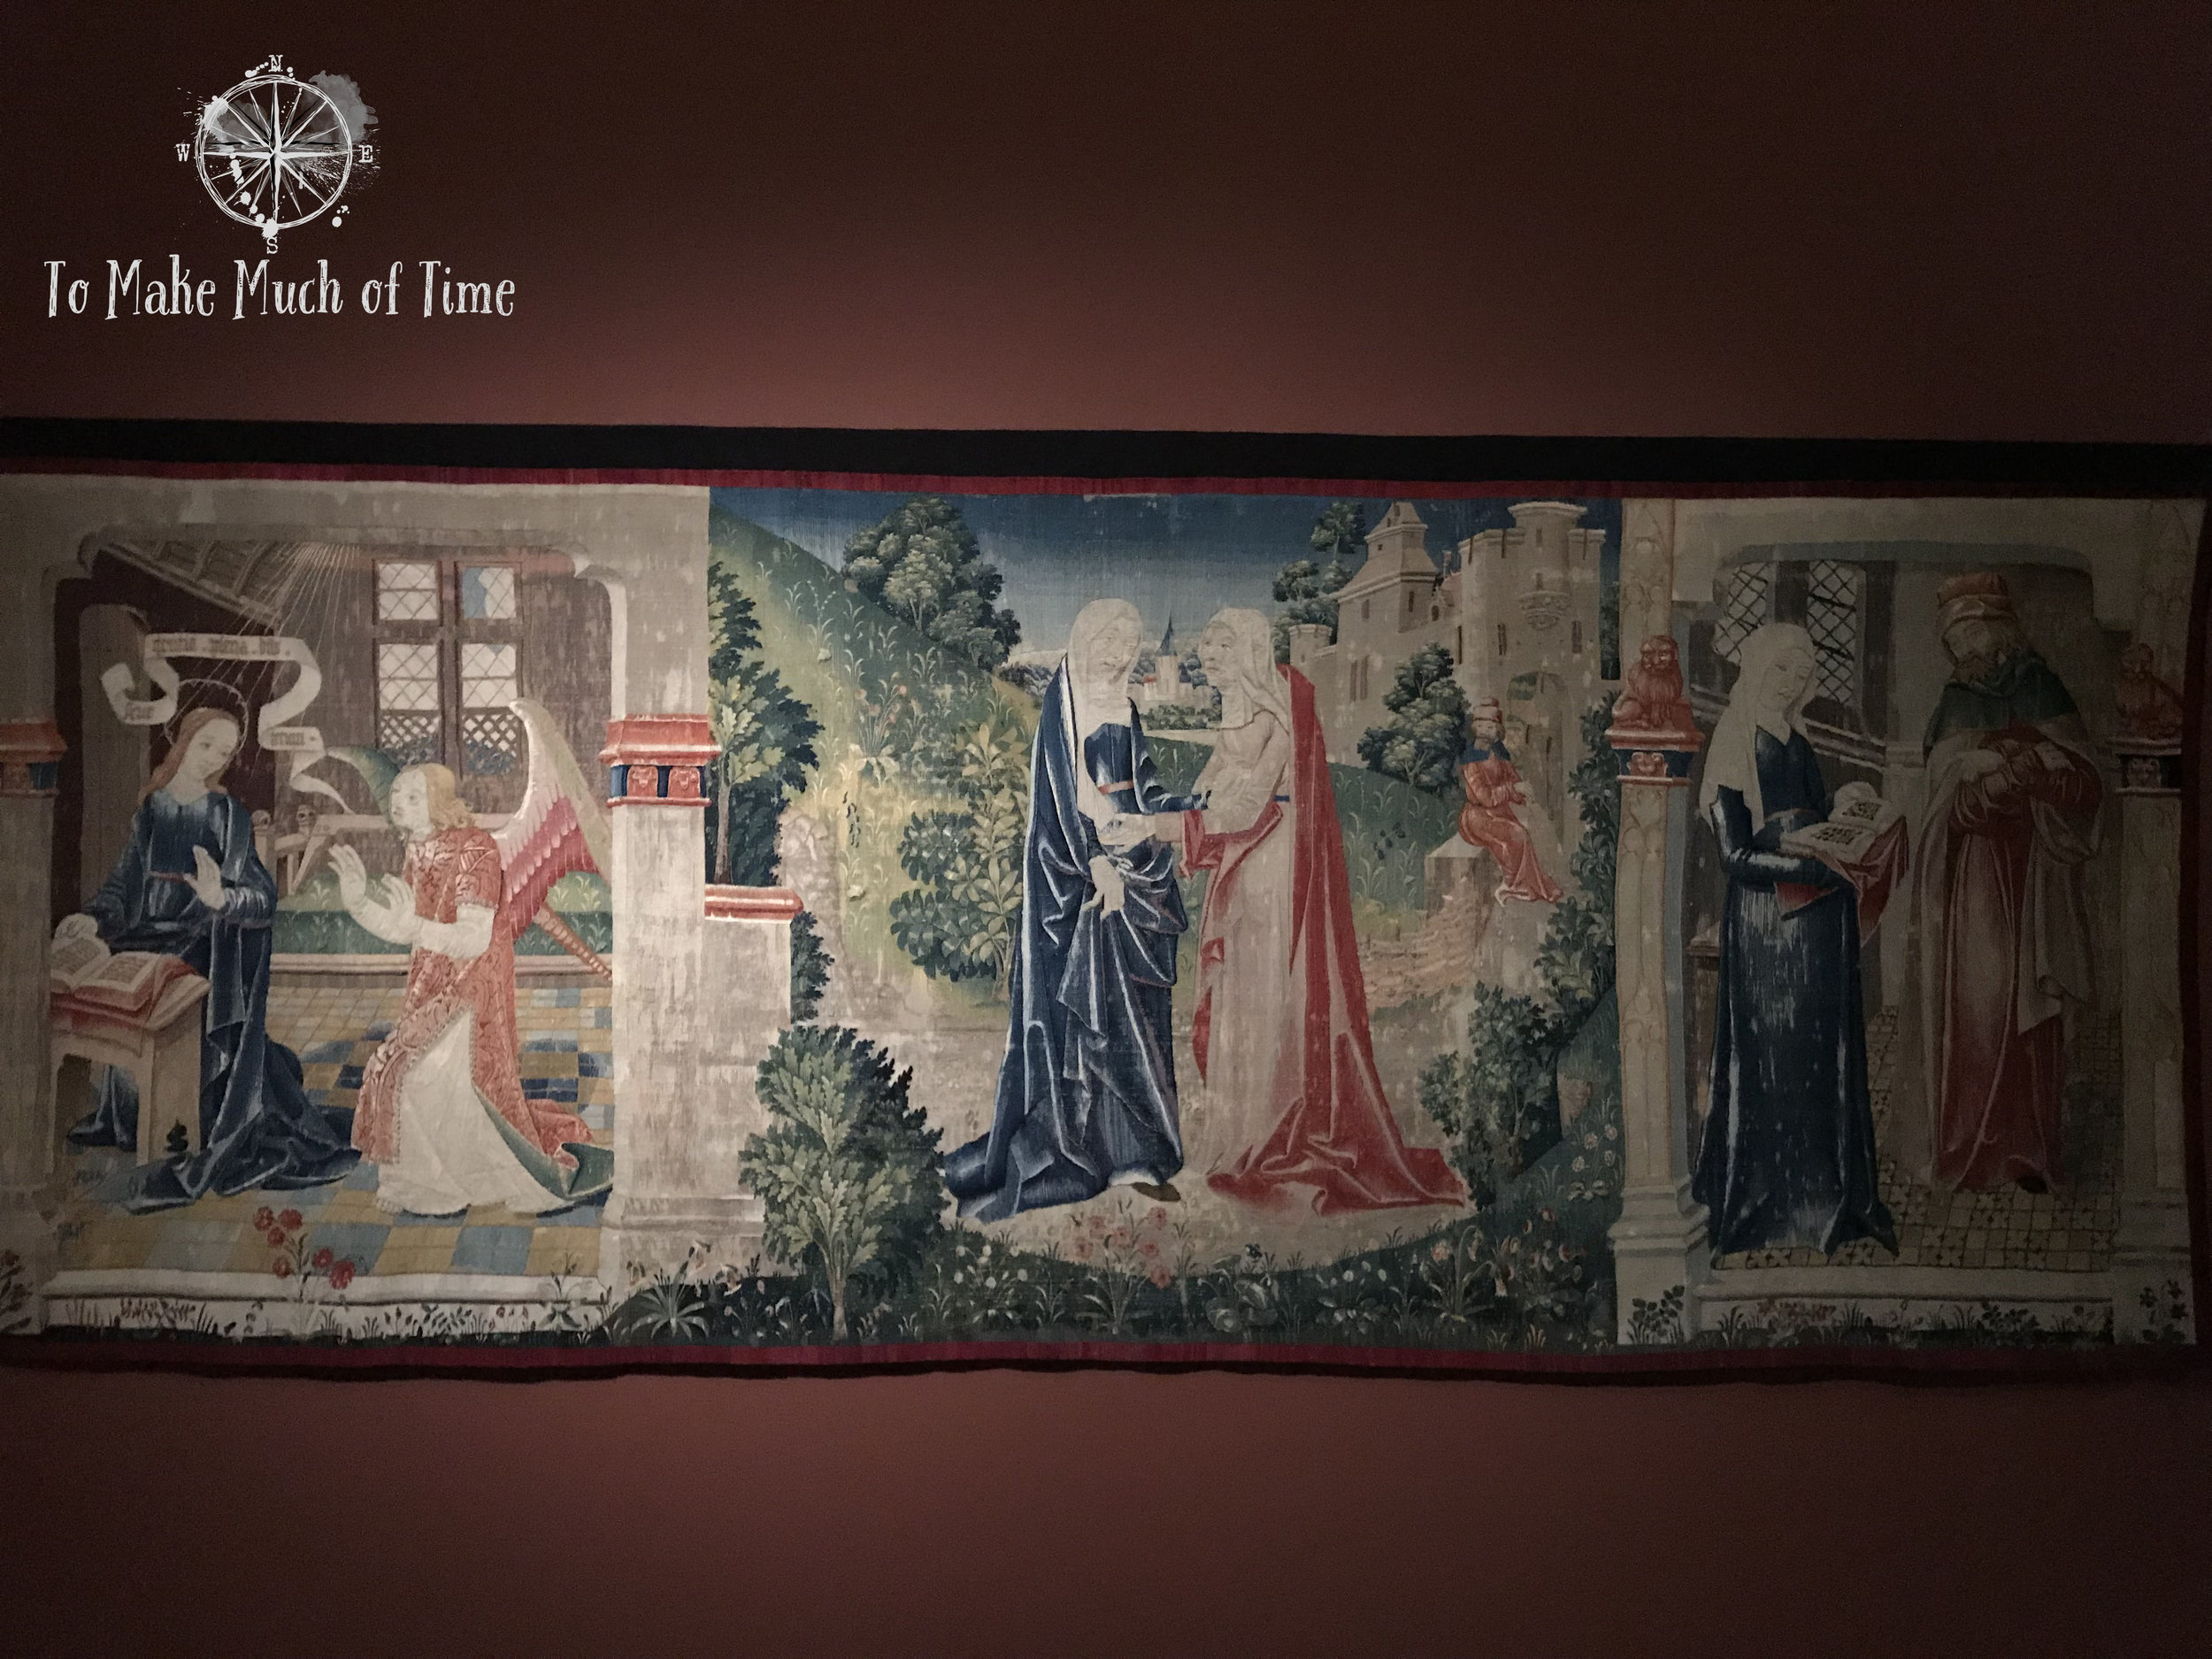 Cluny Museum | Lady and the Unicorn | Medieval Tapestry | Musee de Cluny | Paris France | To Make Much of Time